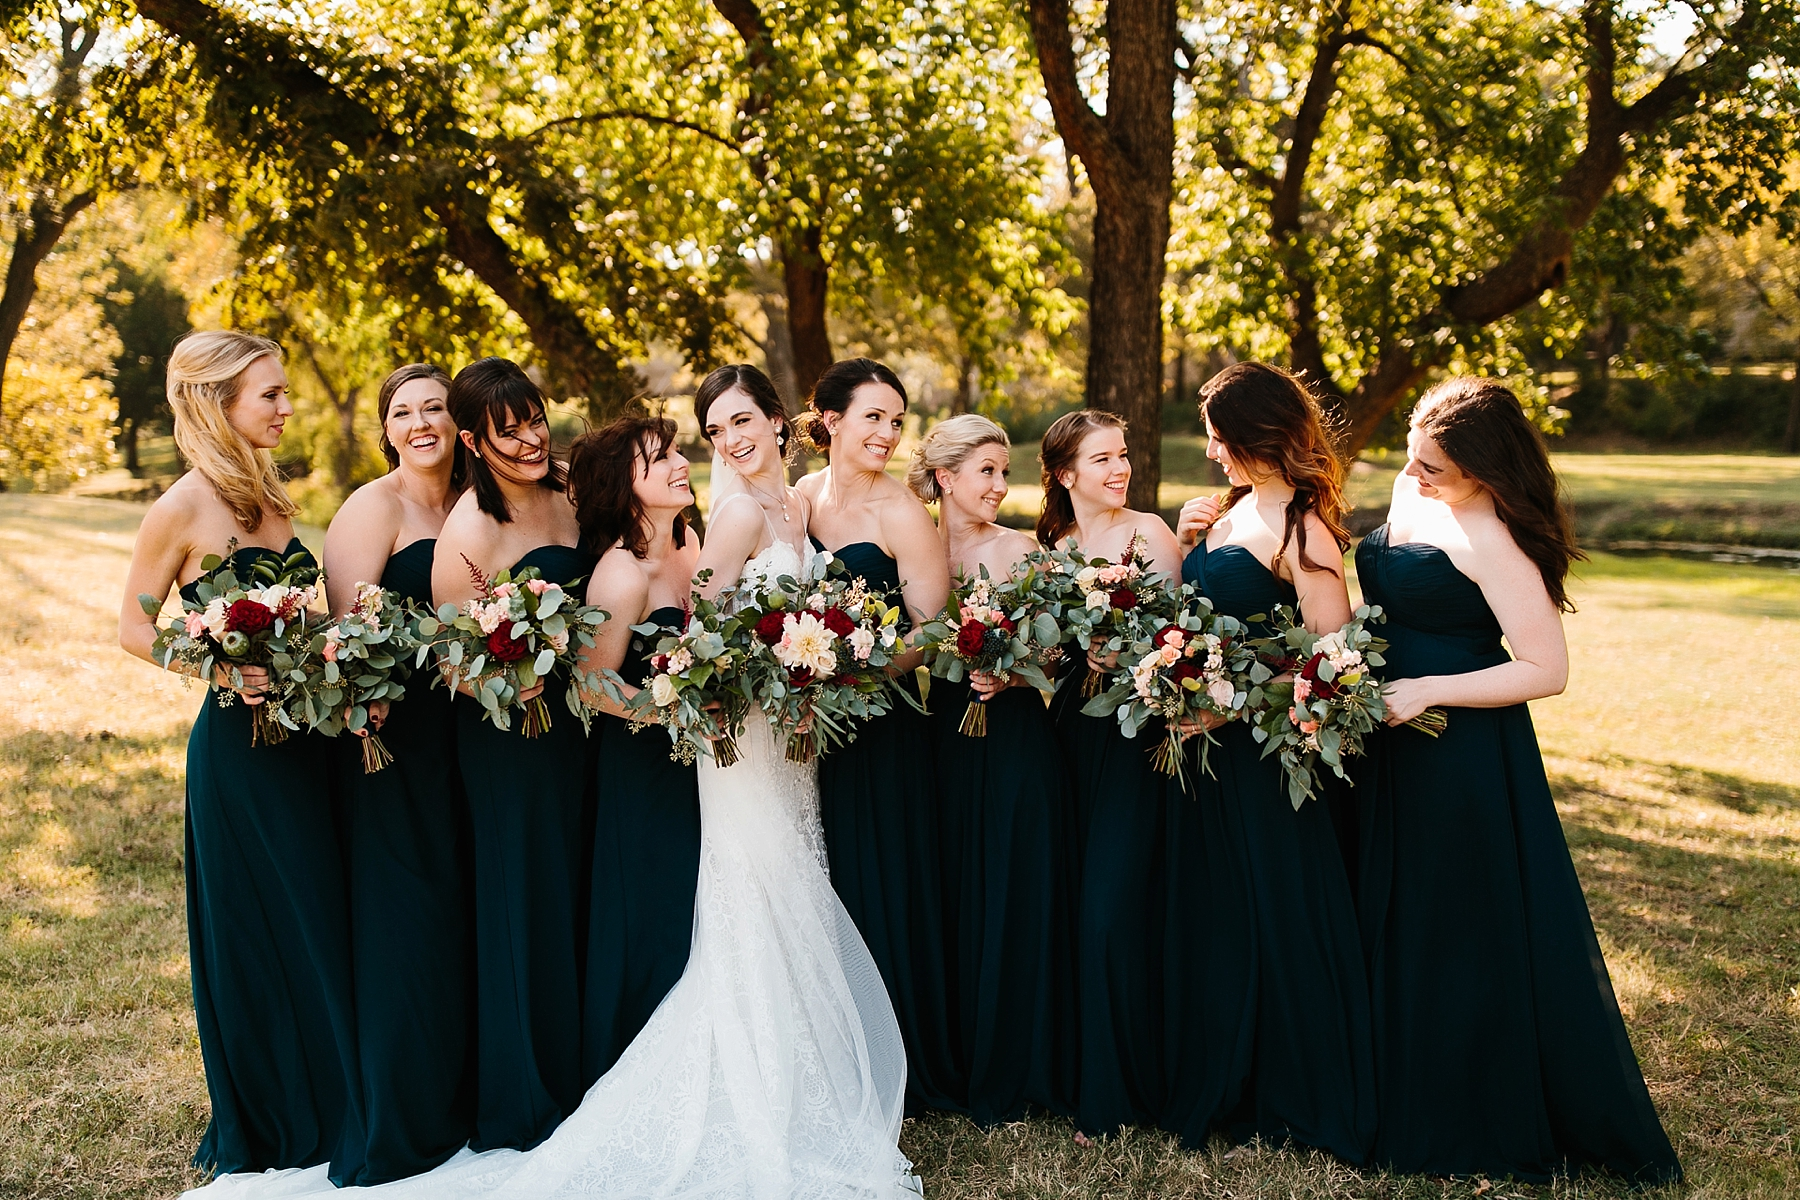 Emily + Caleb _ an elegant, intentional, industrial style wedding with navy + gold accents at 6500 in Dallas, TX by North Texas Wedding Photographer Rachel Meagan Photography _ 063